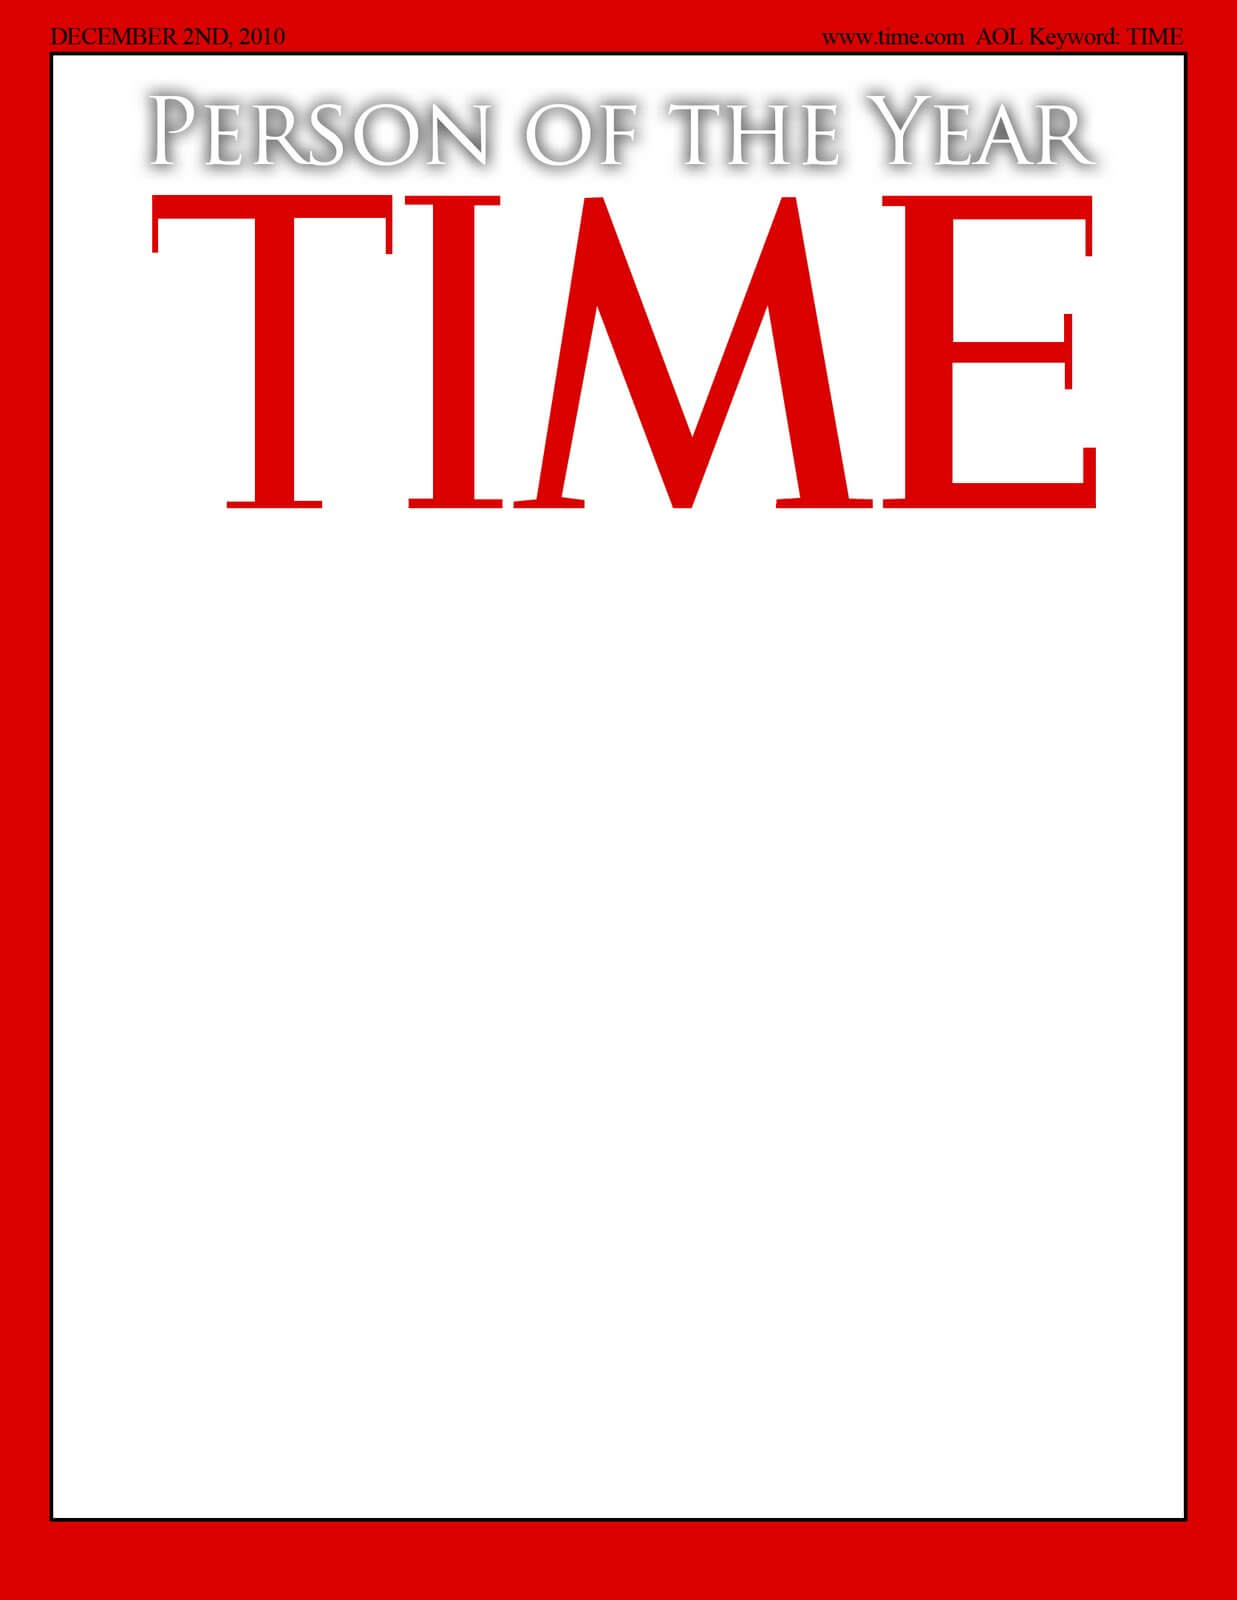 11 Time Magazine Cover Template Psd Images - Time Magazine inside Blank Magazine Template Psd